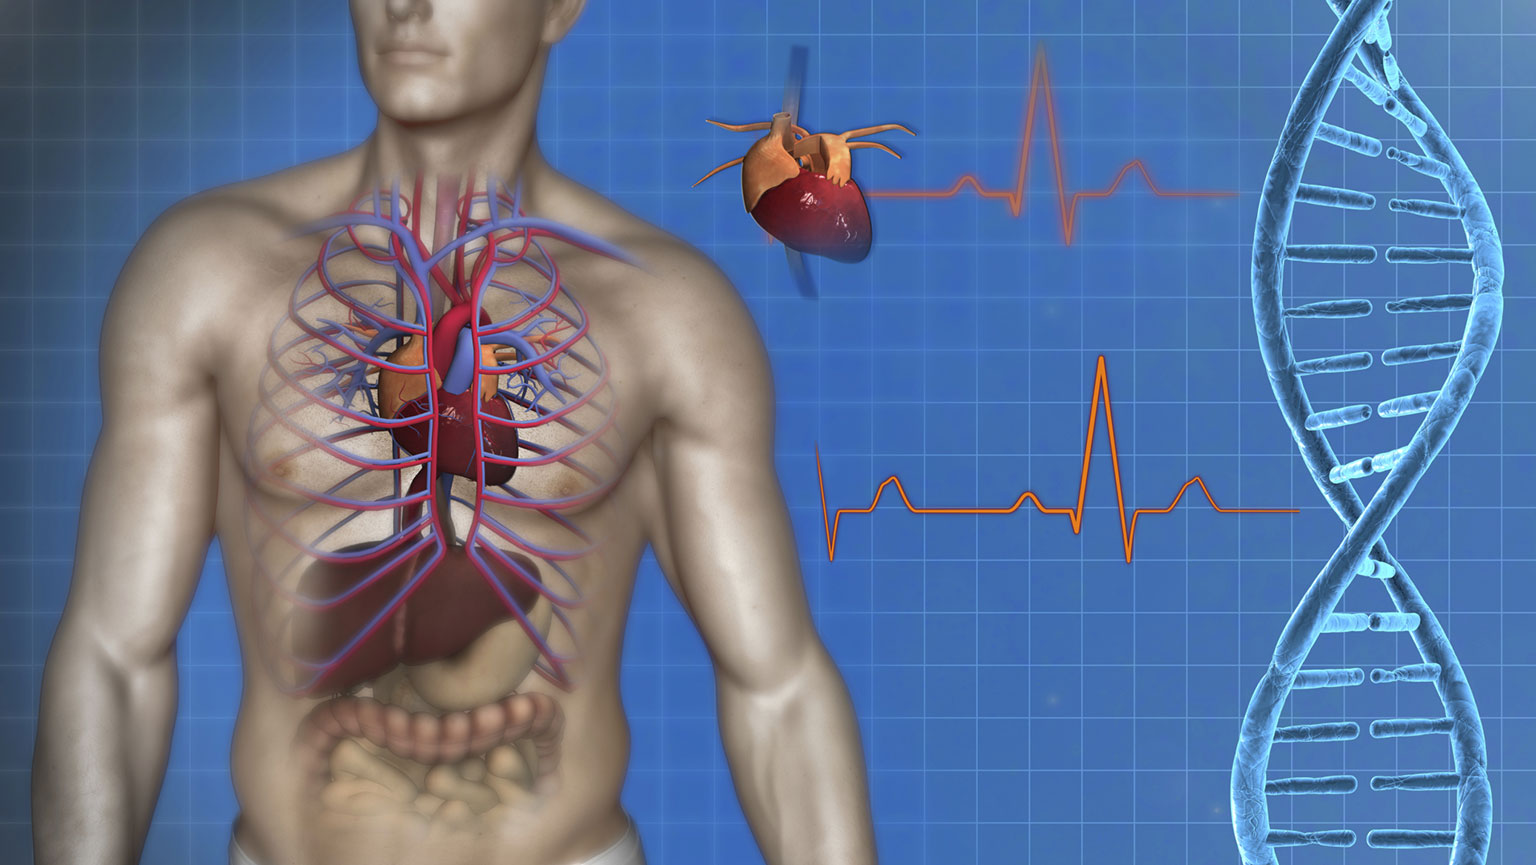 Cardiovascular System—Anatomy of the Heart | The Great Courses Plus